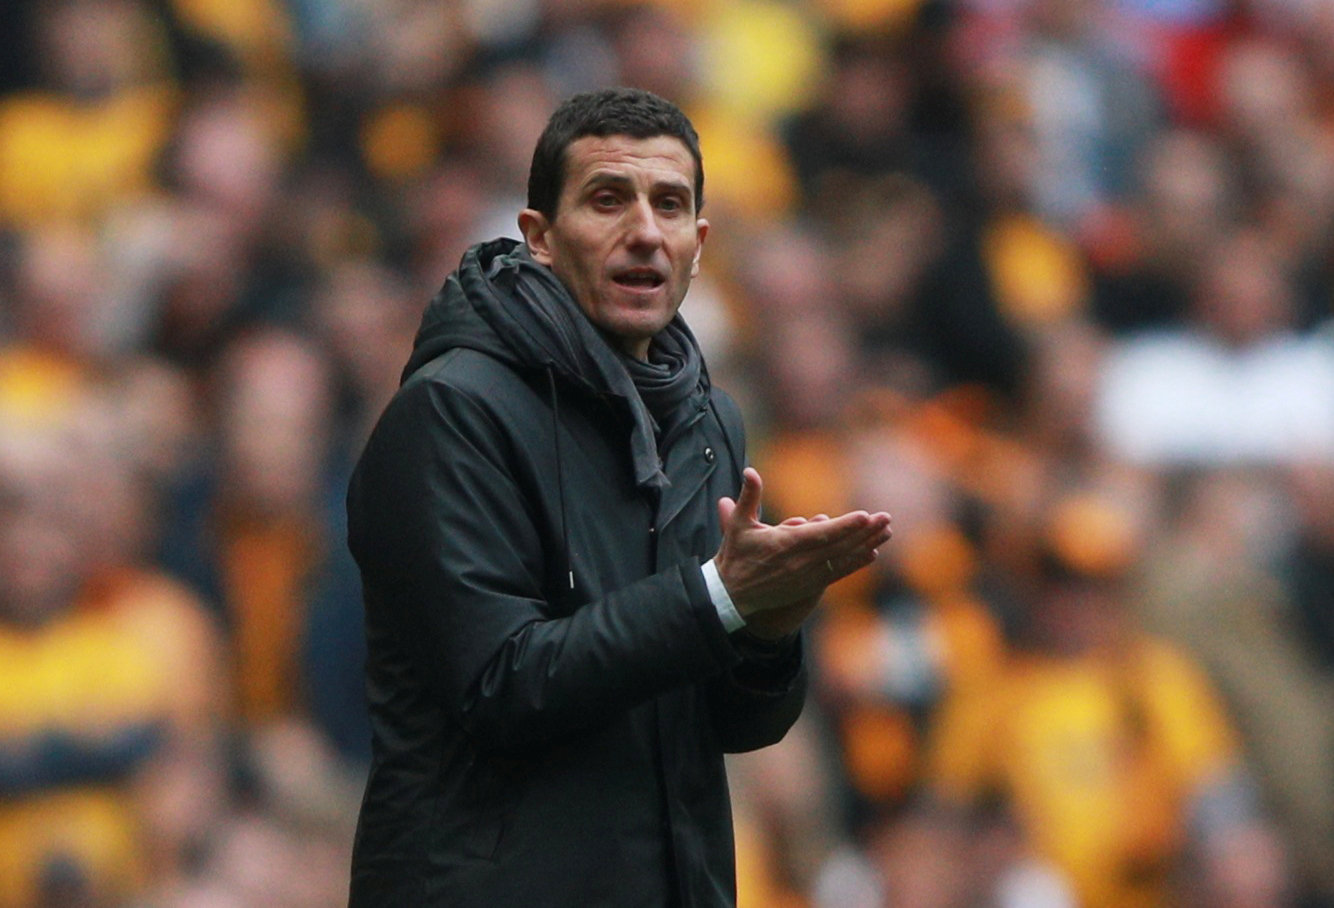 Javi Gracia said he can't understand racism. Picture: Action Images